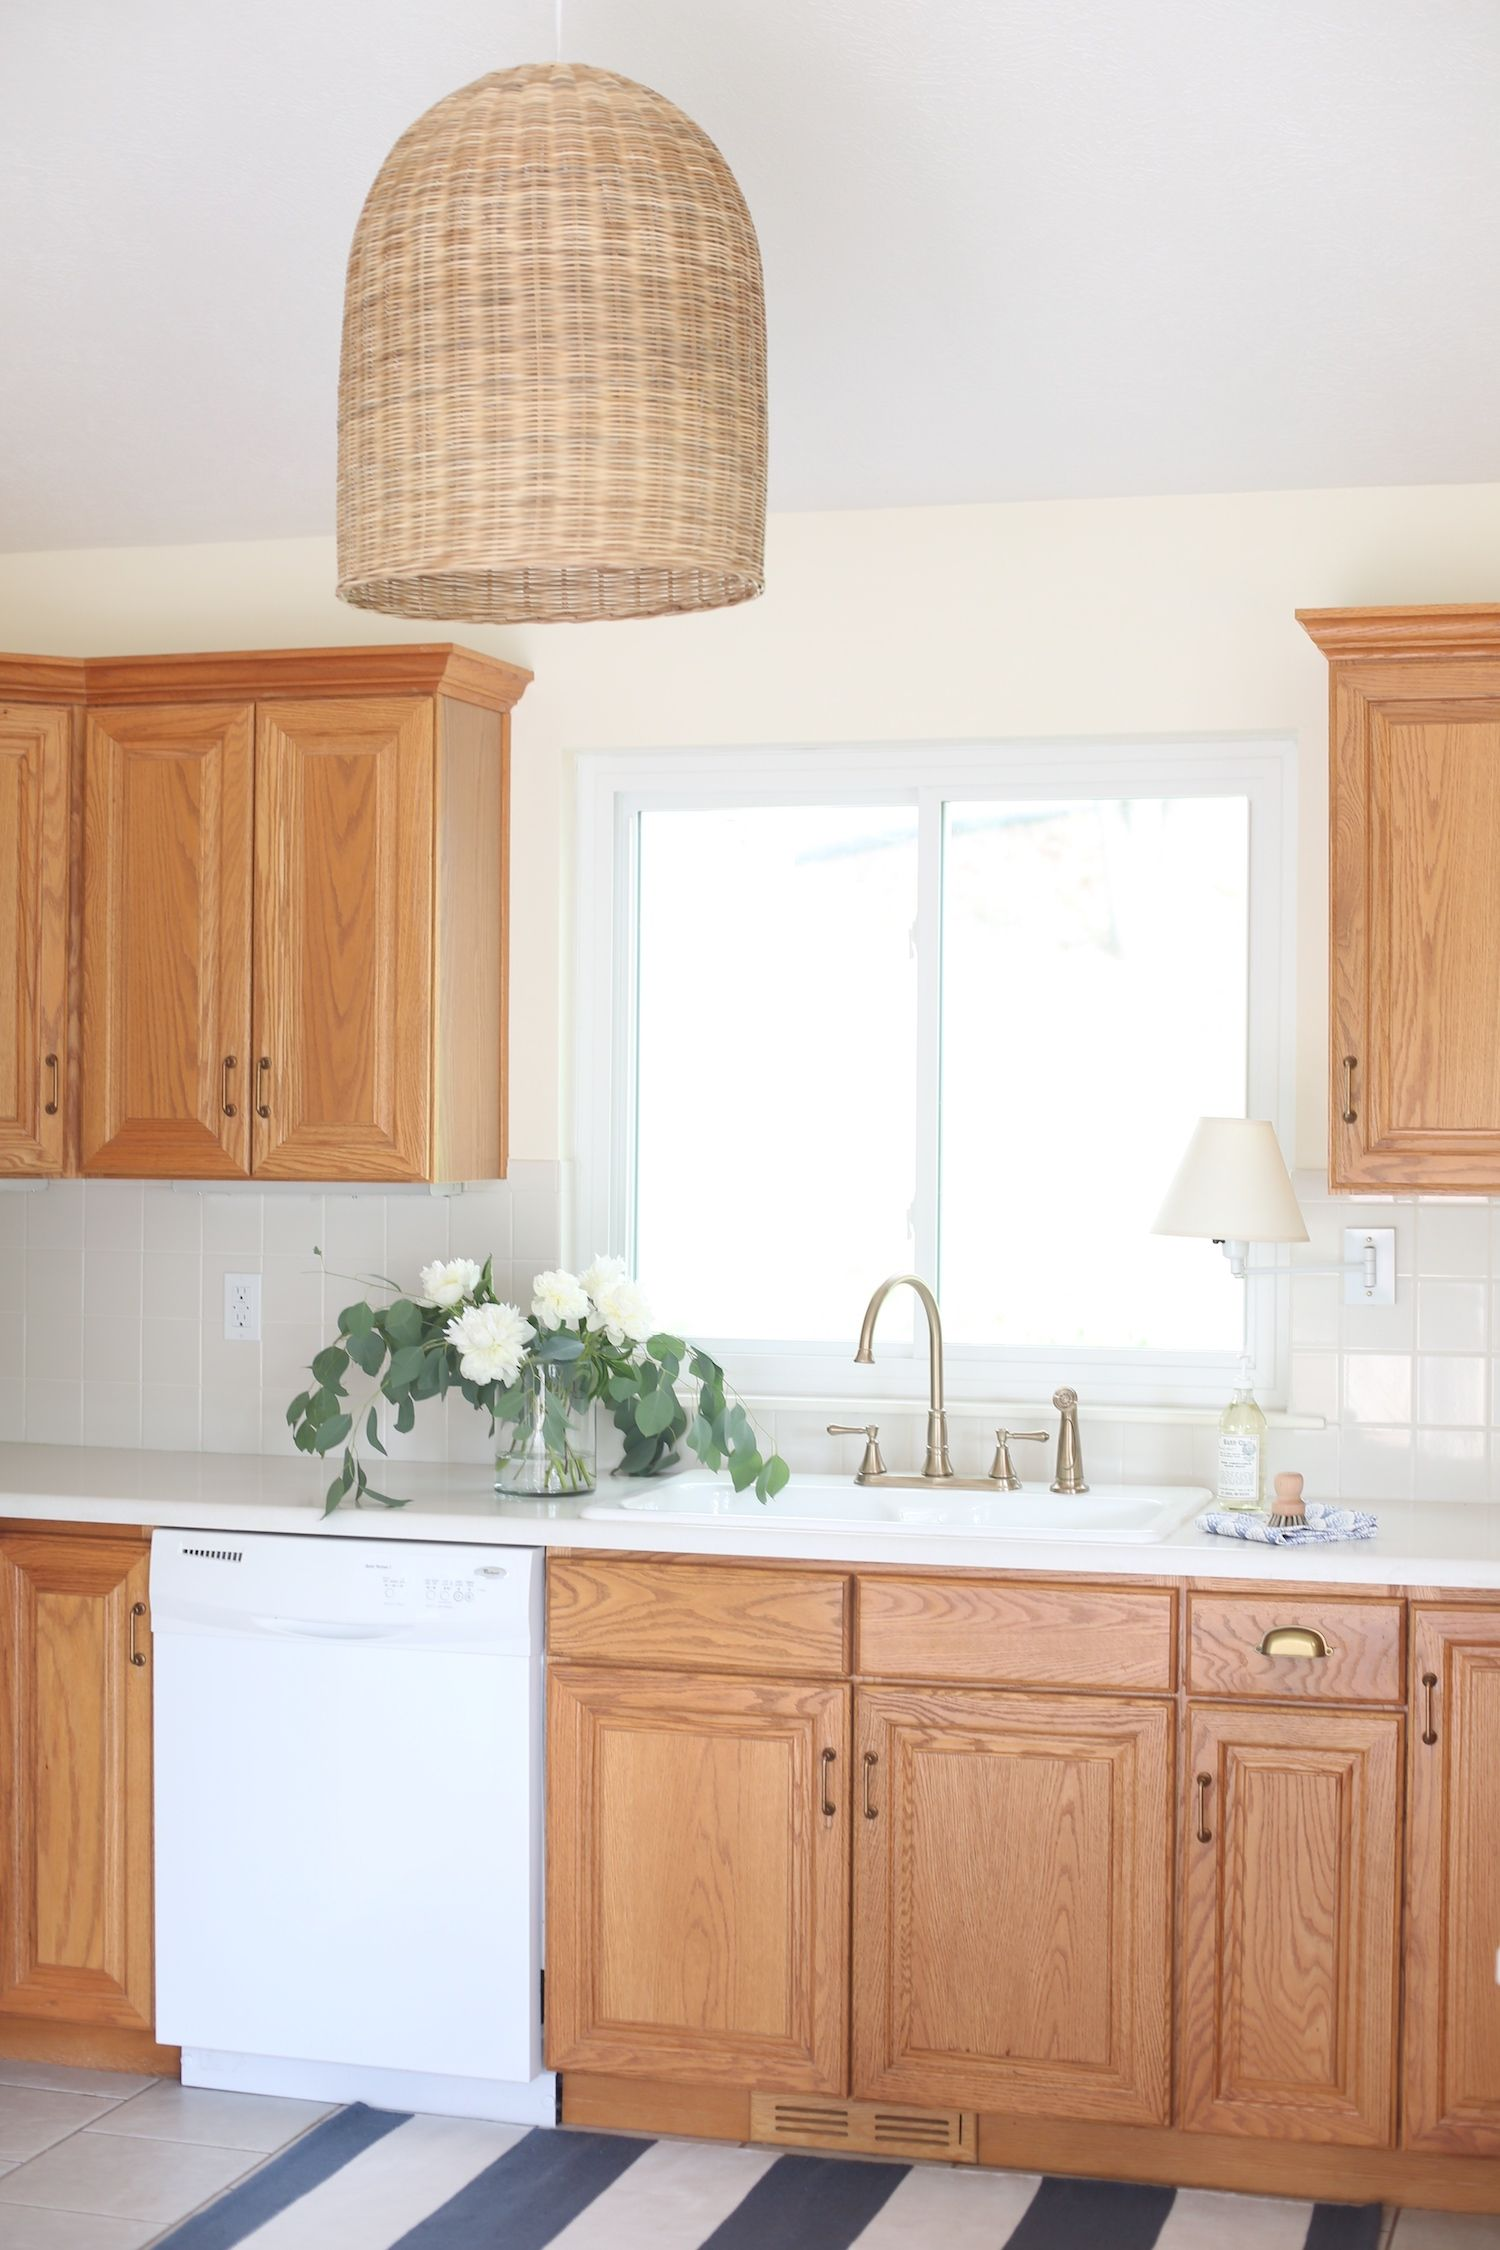 Ad How To Update A Dated 90 S Kitchen With Oak Cabinets Without Painting Them Deltafaucet Dayofdesign Deltad Oak Kitchen Cabinets Oak Kitchen Oak Cabinets